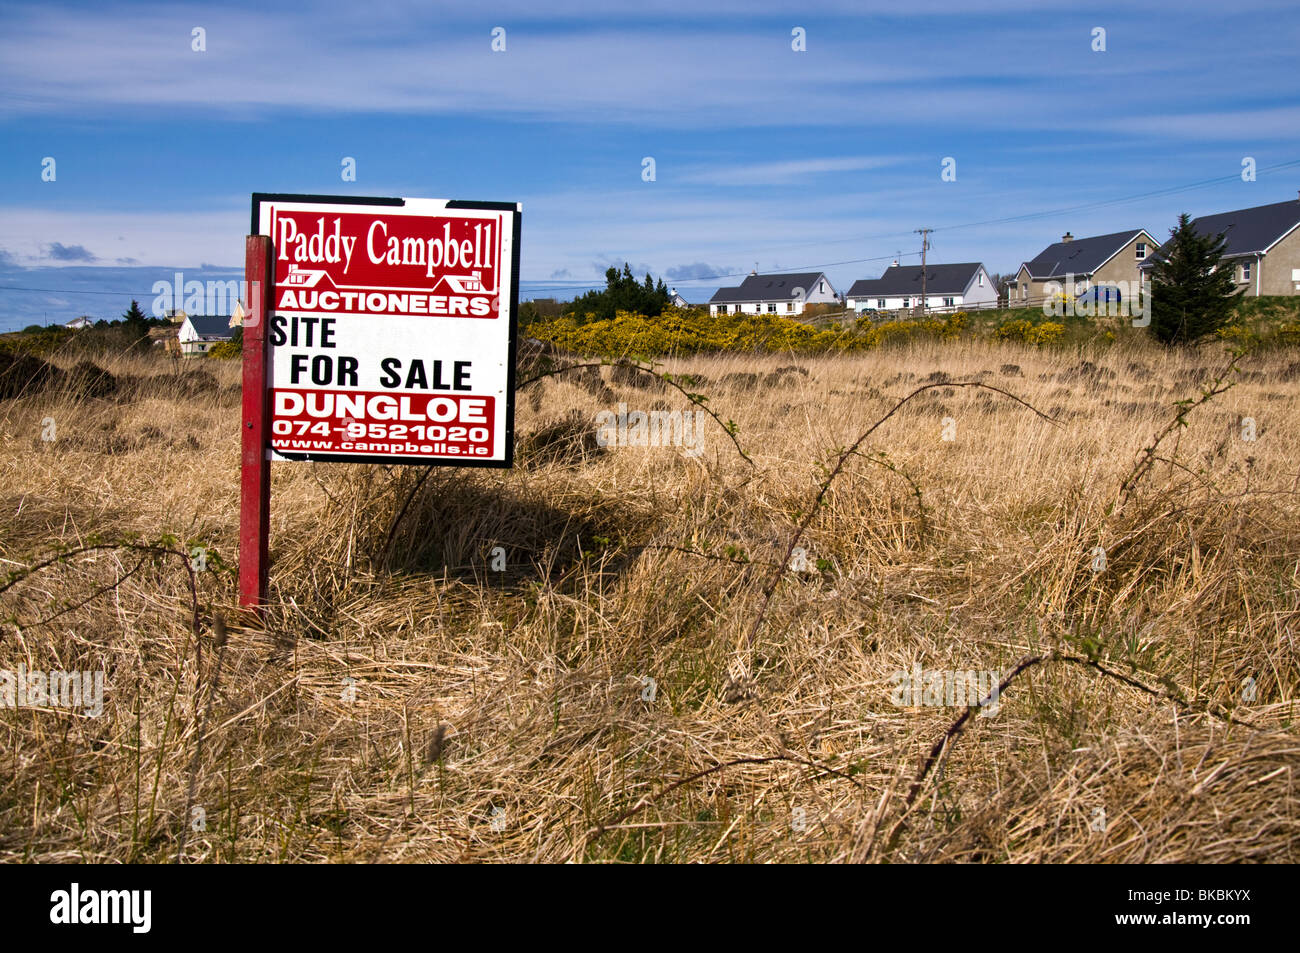 Land for sale in Donegal - Stock Image